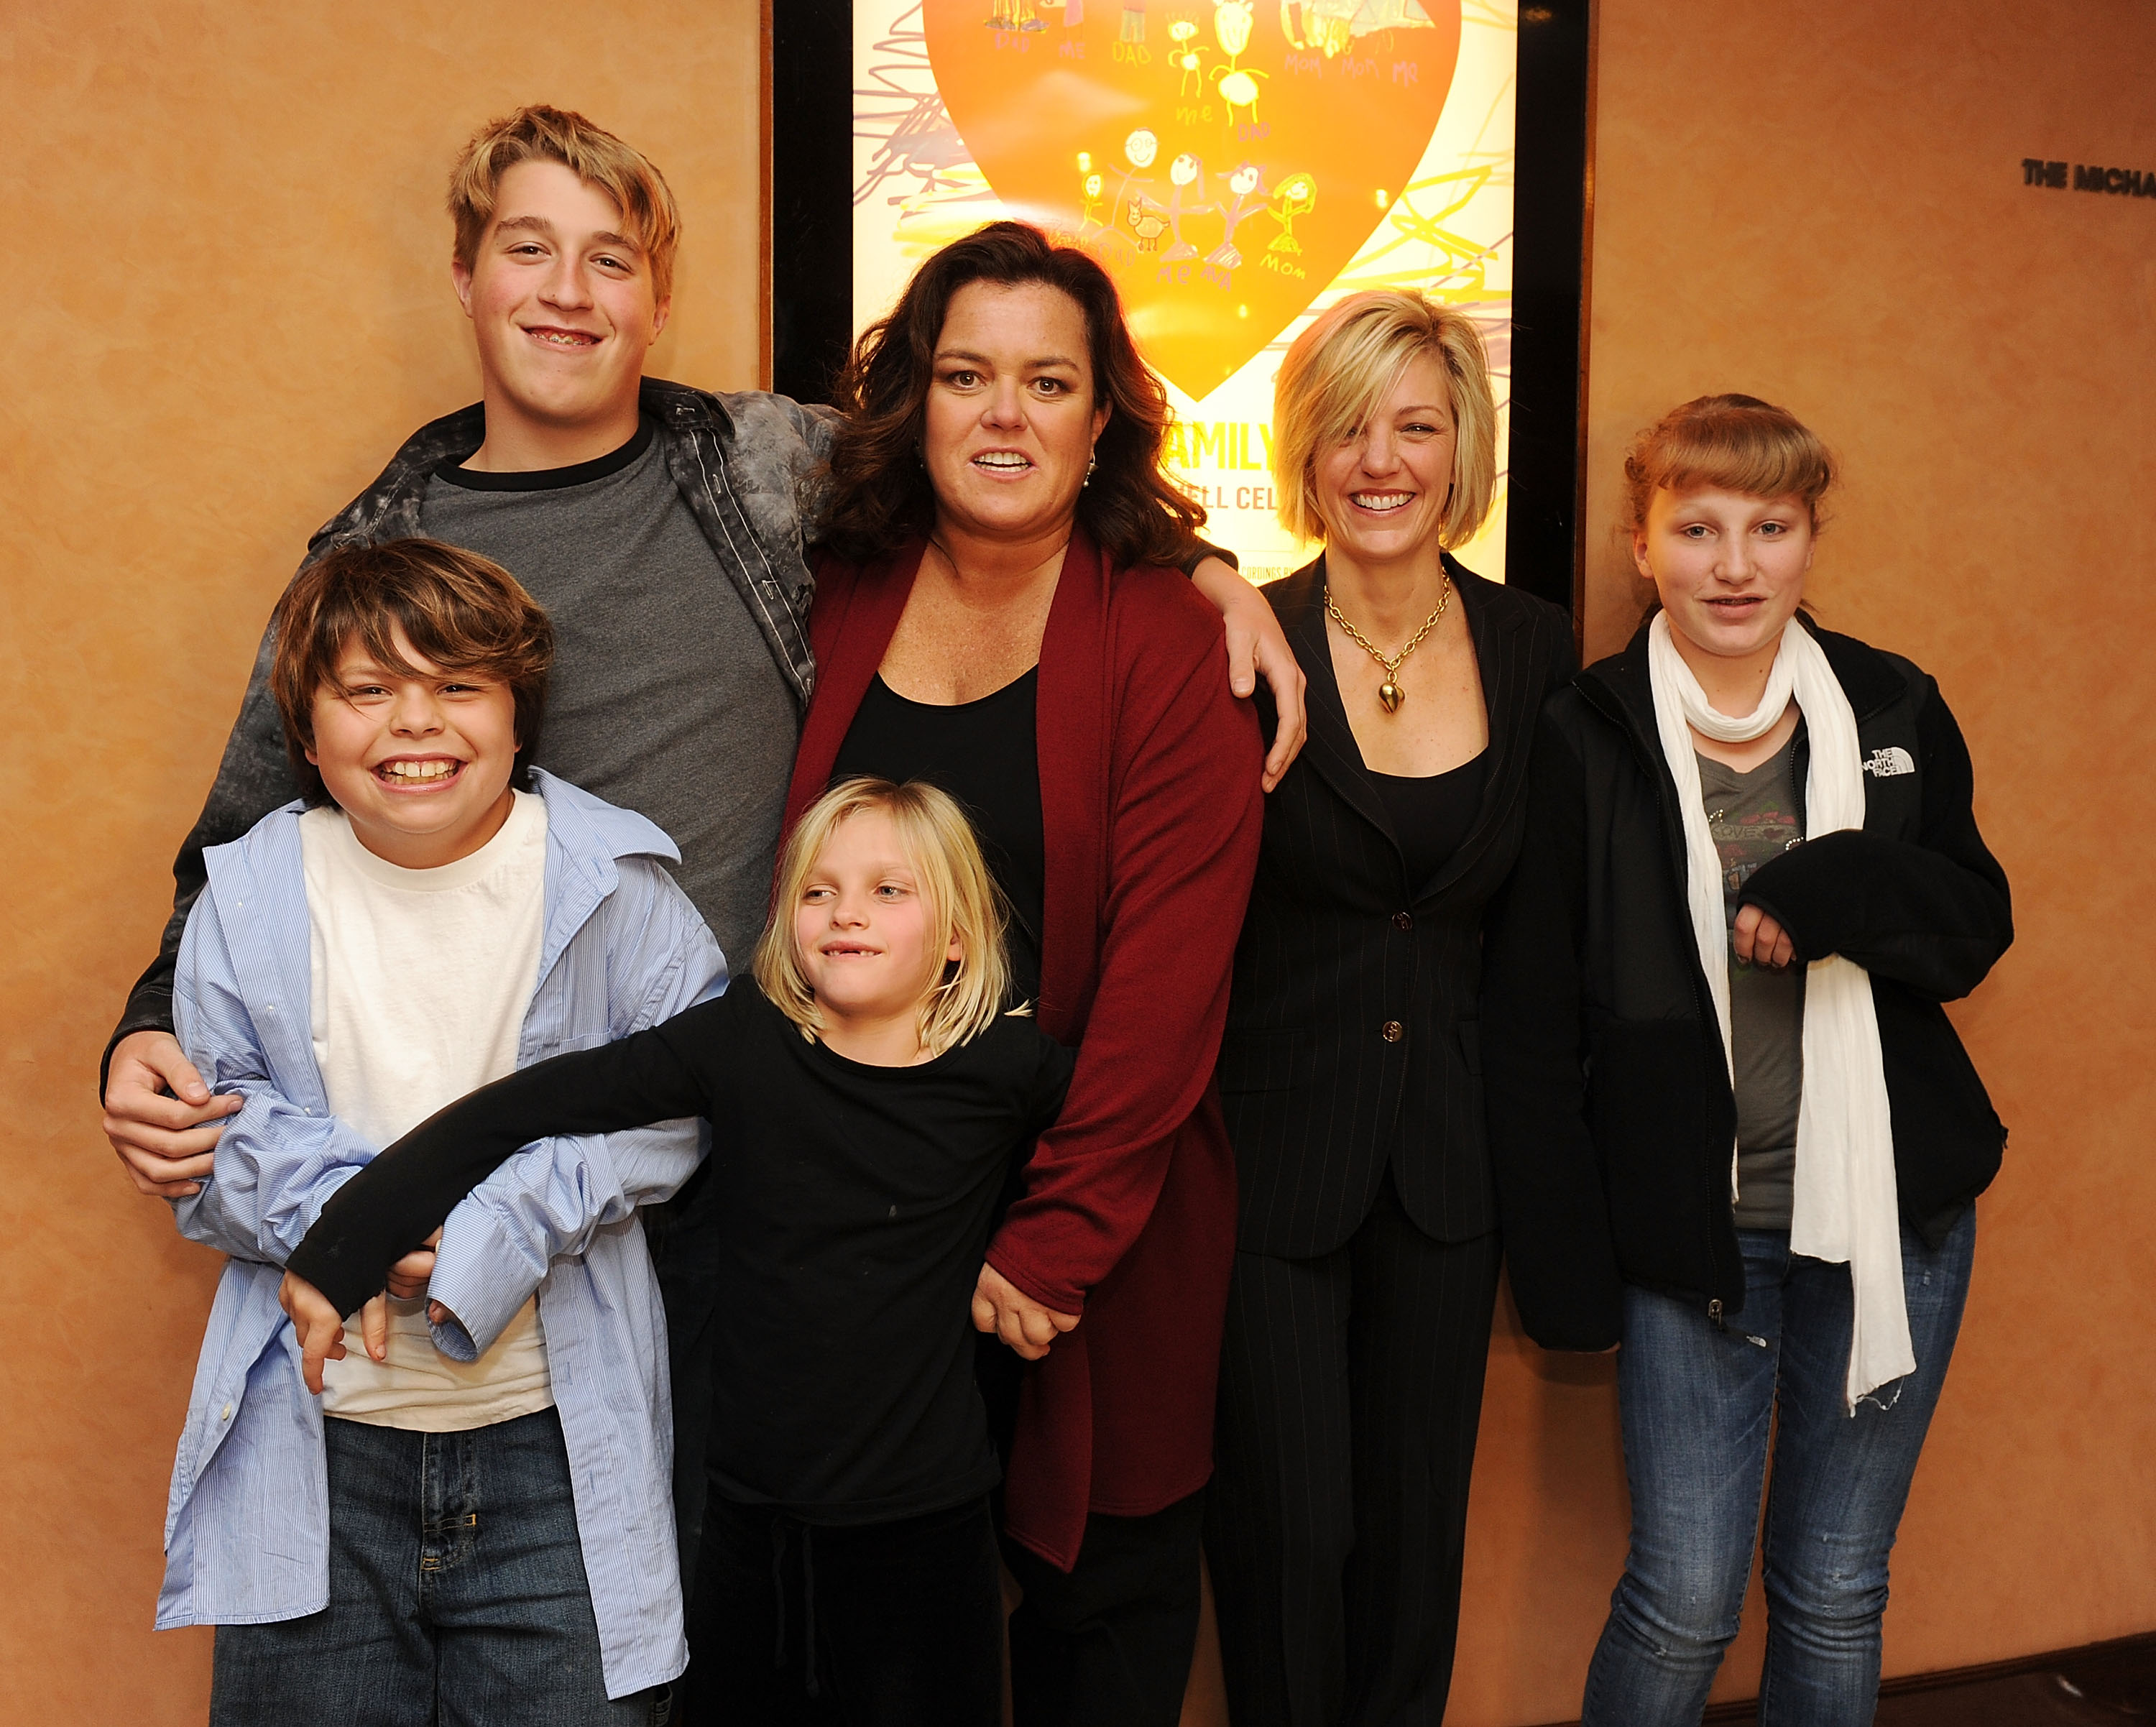 Rosie, Kelli and their children. Image Credit: Getty Images